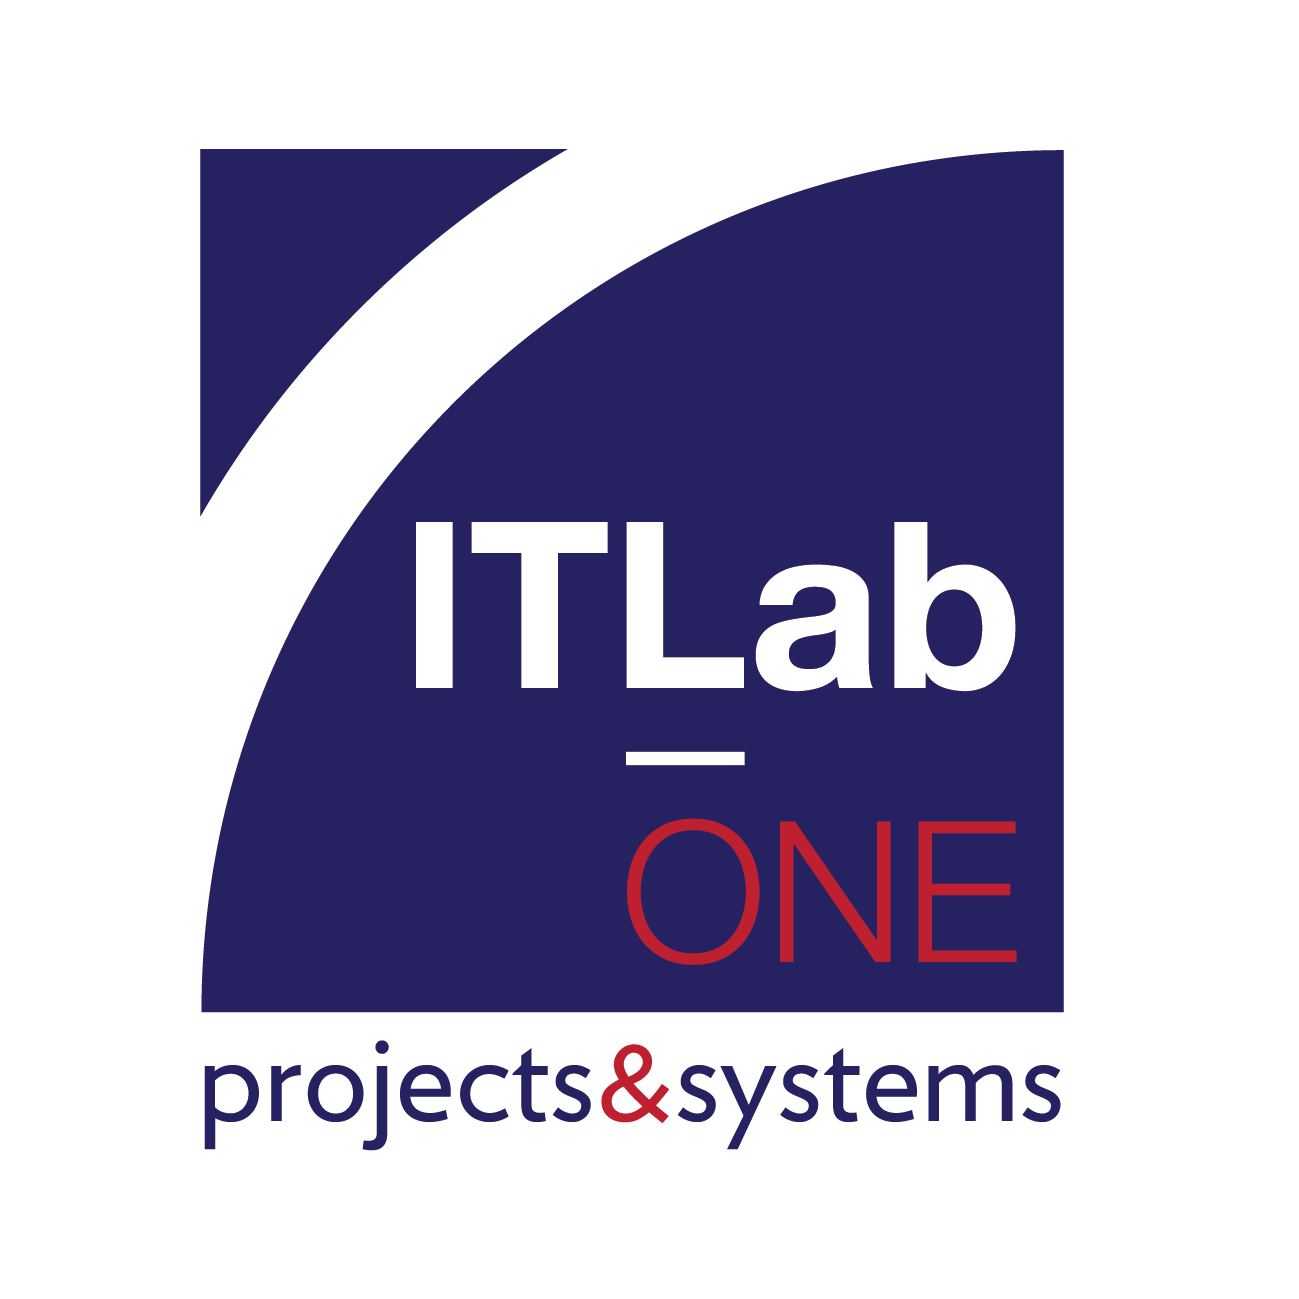 Itlab-ONE